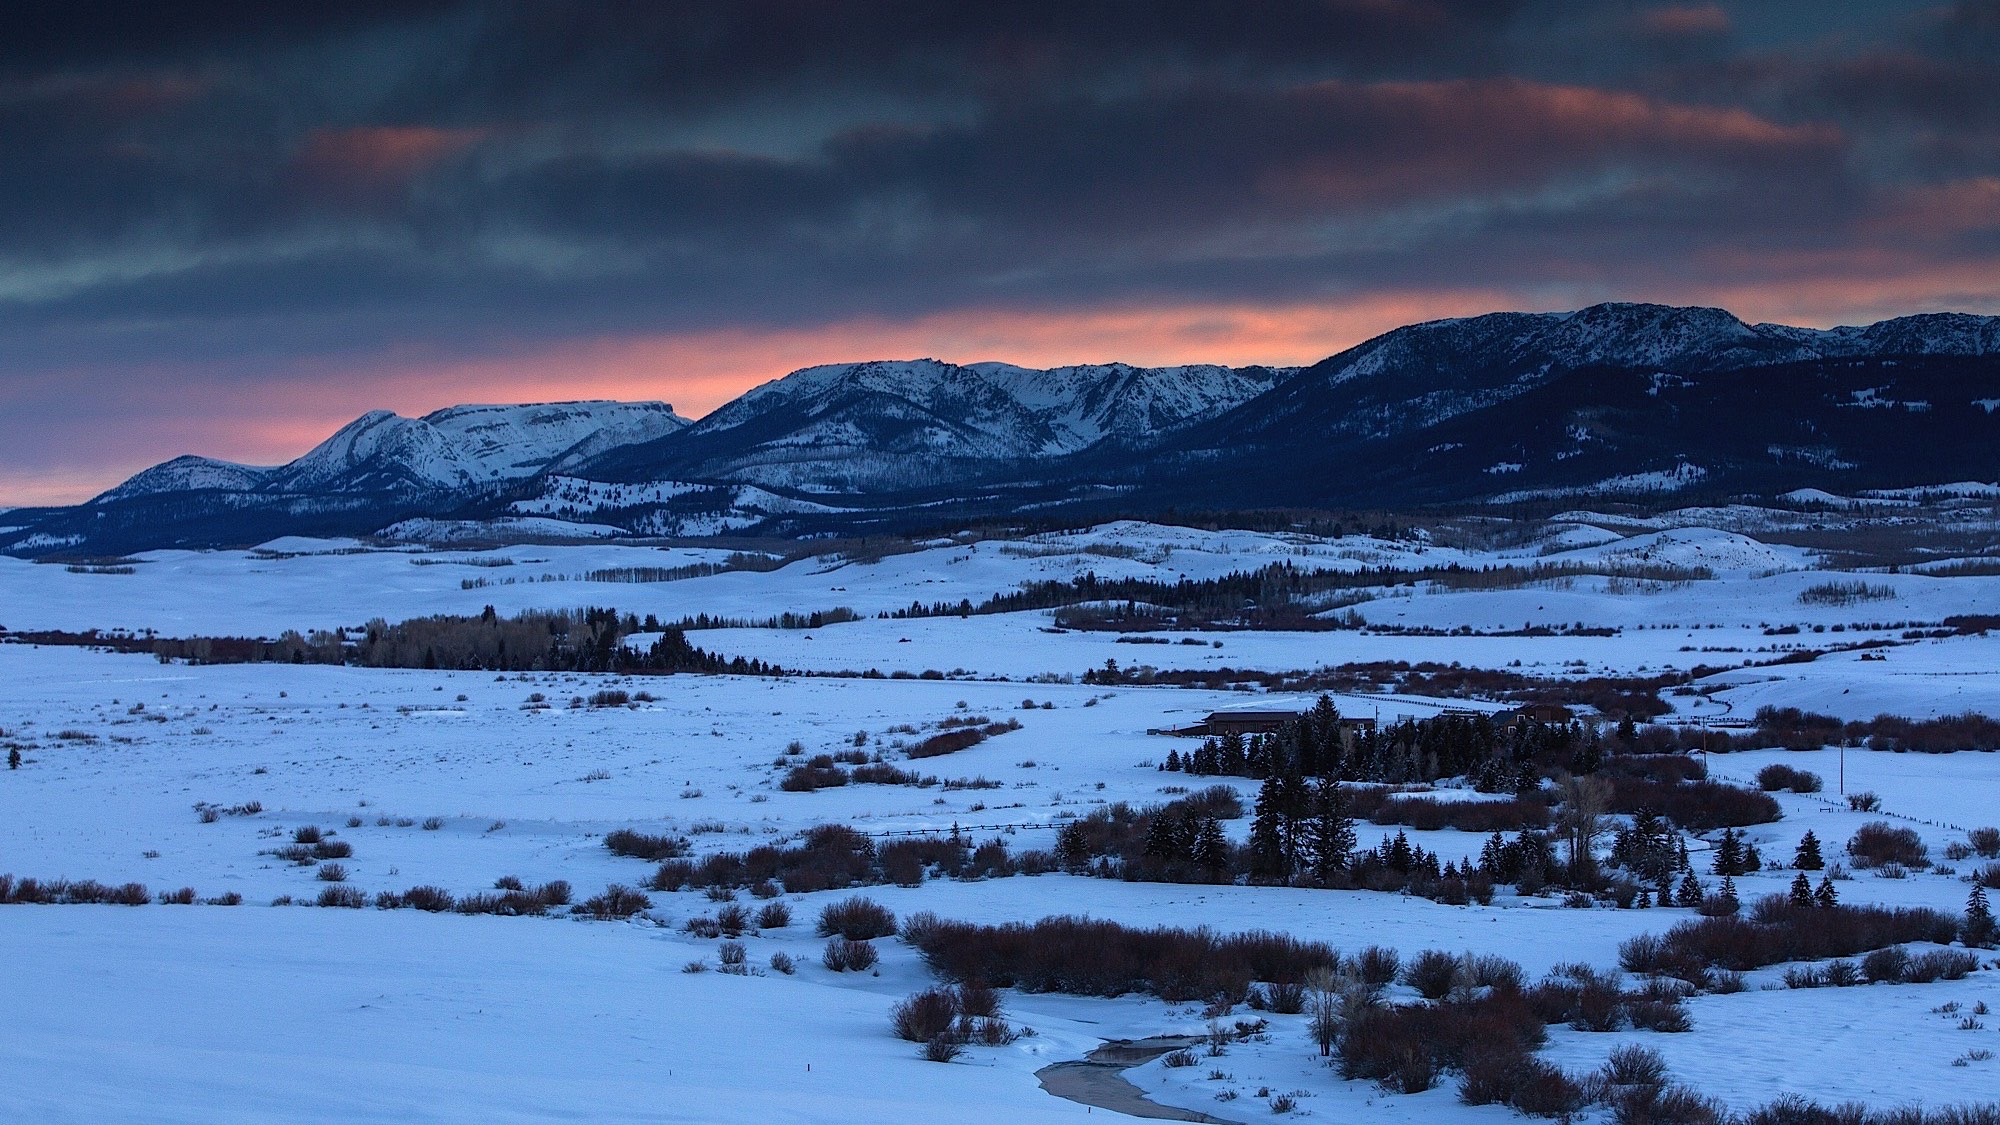 Sunrise over the Winds from the Cora road in the Upper Green River Valley, WY